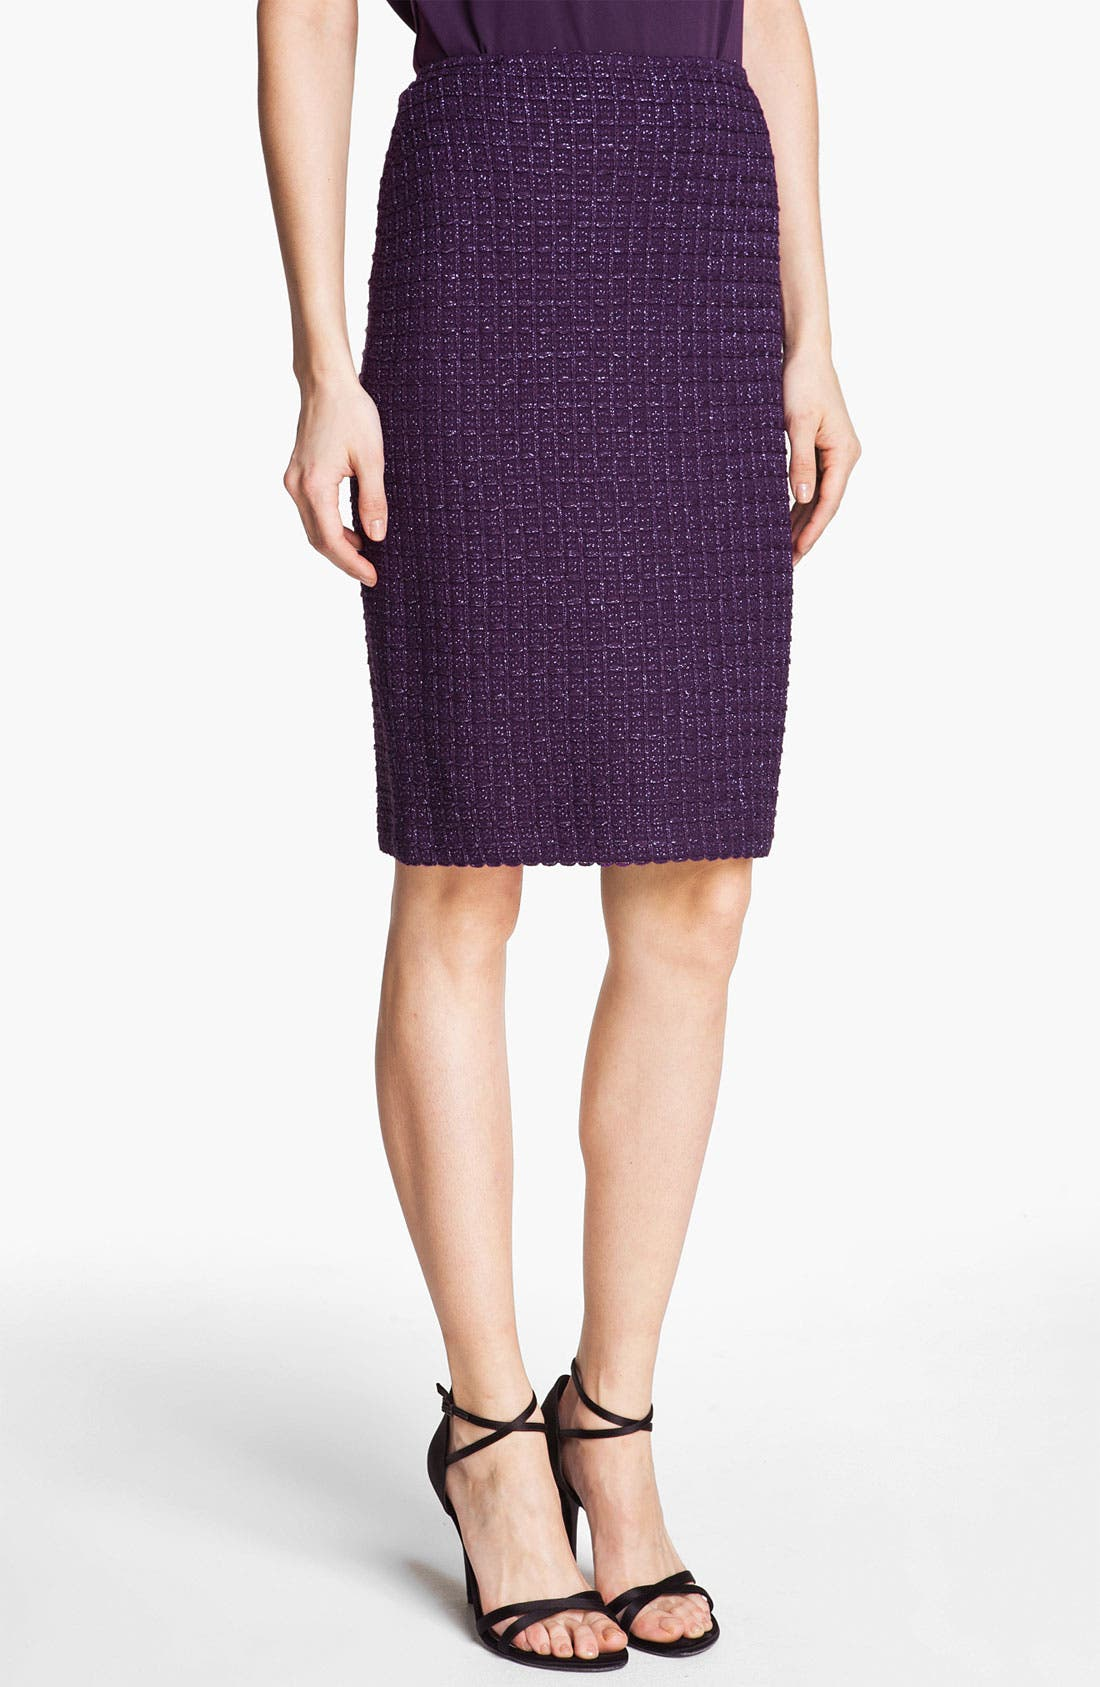 Alternate Image 1 Selected - St. John Collection Shimmer Tweed Pencil Skirt